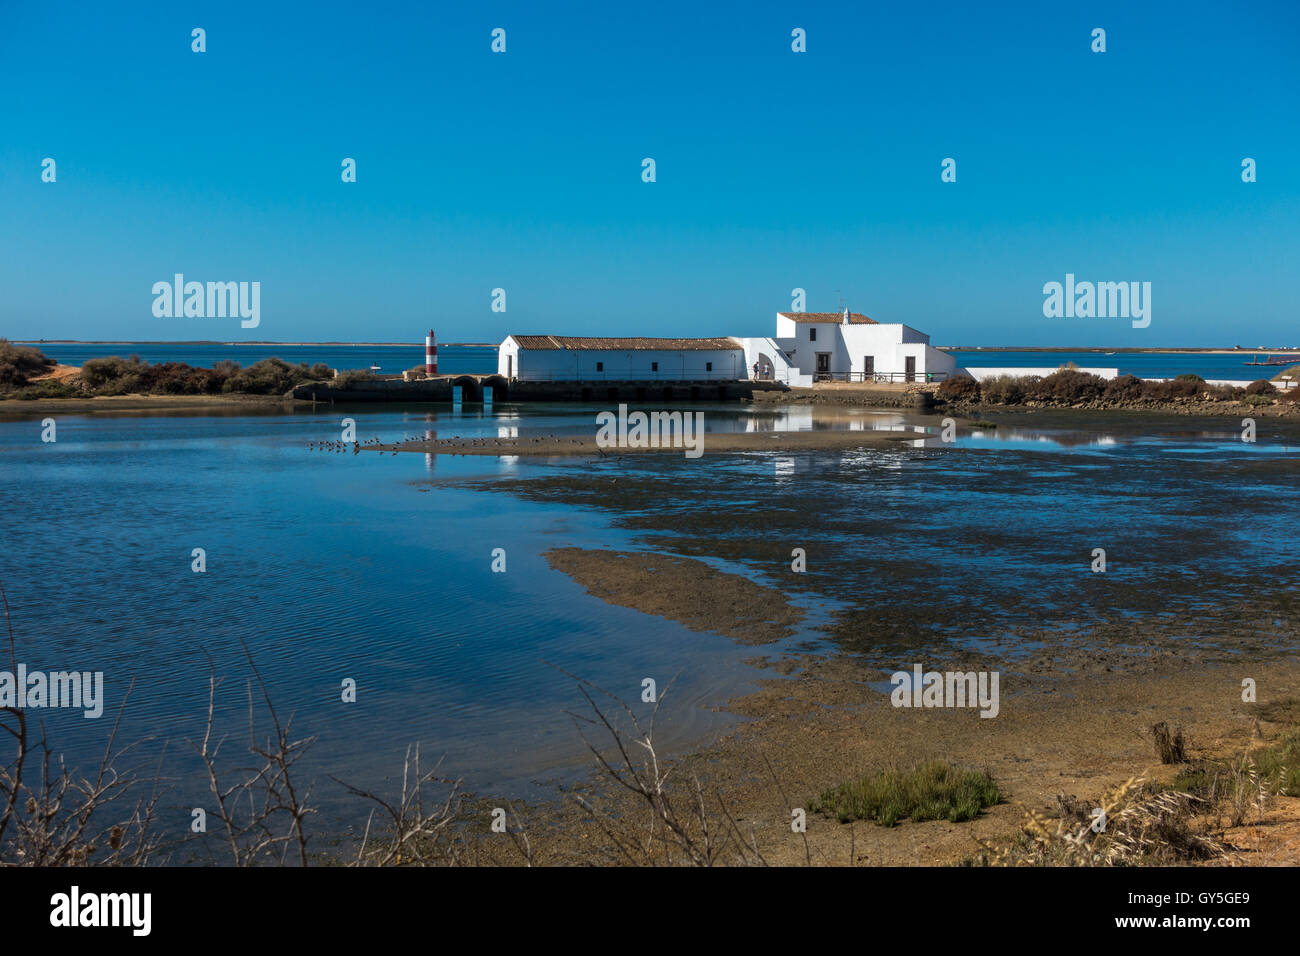 Old tidal mill (now a museum and wildlife haven), Ria Formosa Natural Park, Olhao, Algarve, Portugal - Stock Image